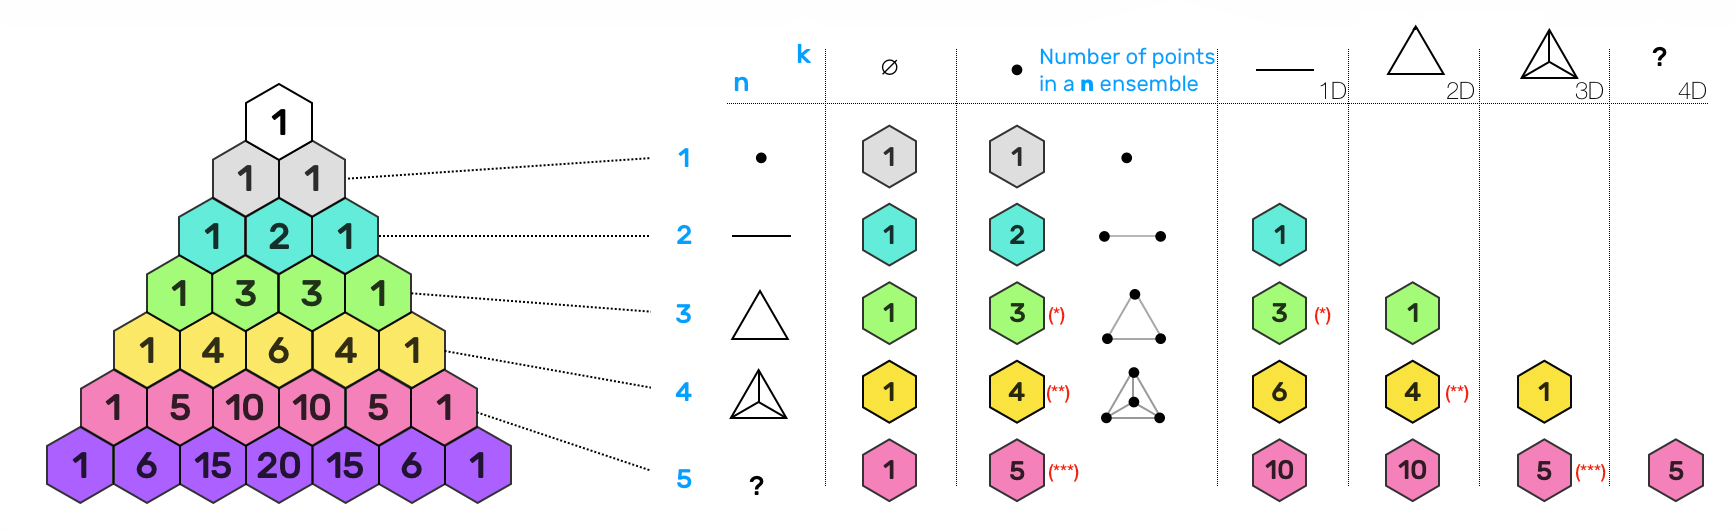 combinatory in pascal's triangle